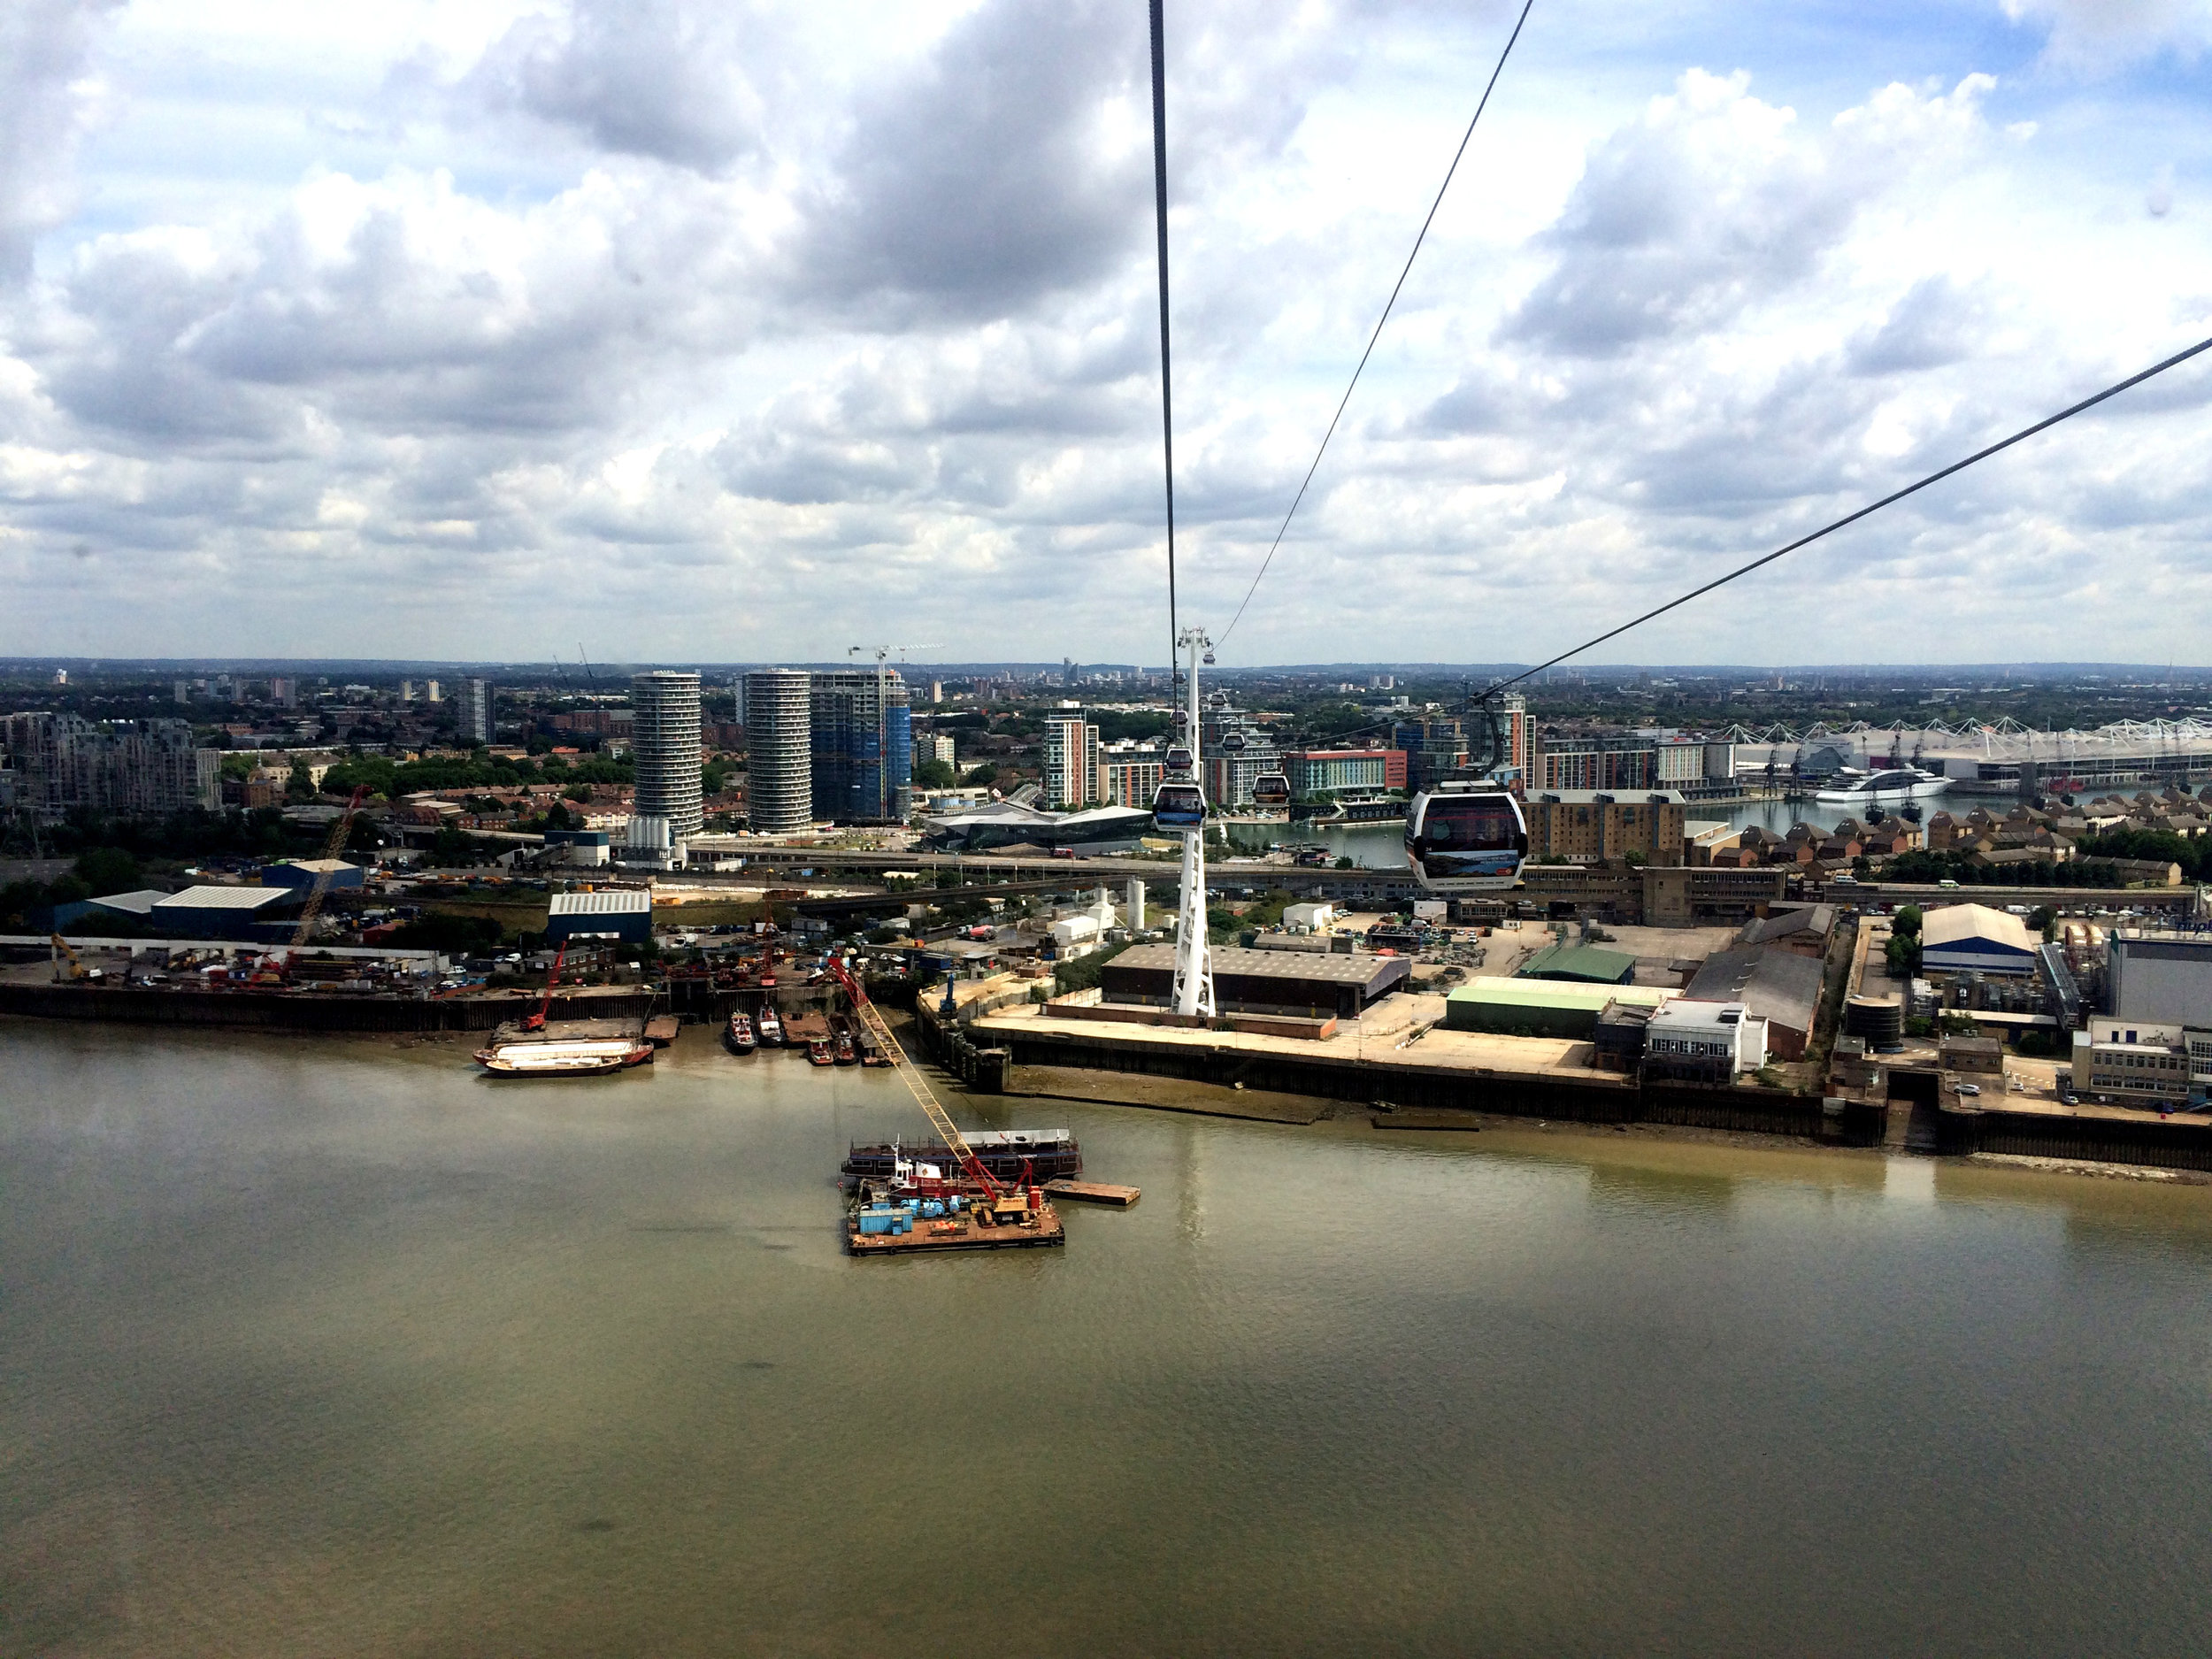 Looking north over the Thames shows the extent of development around the Royal Docks